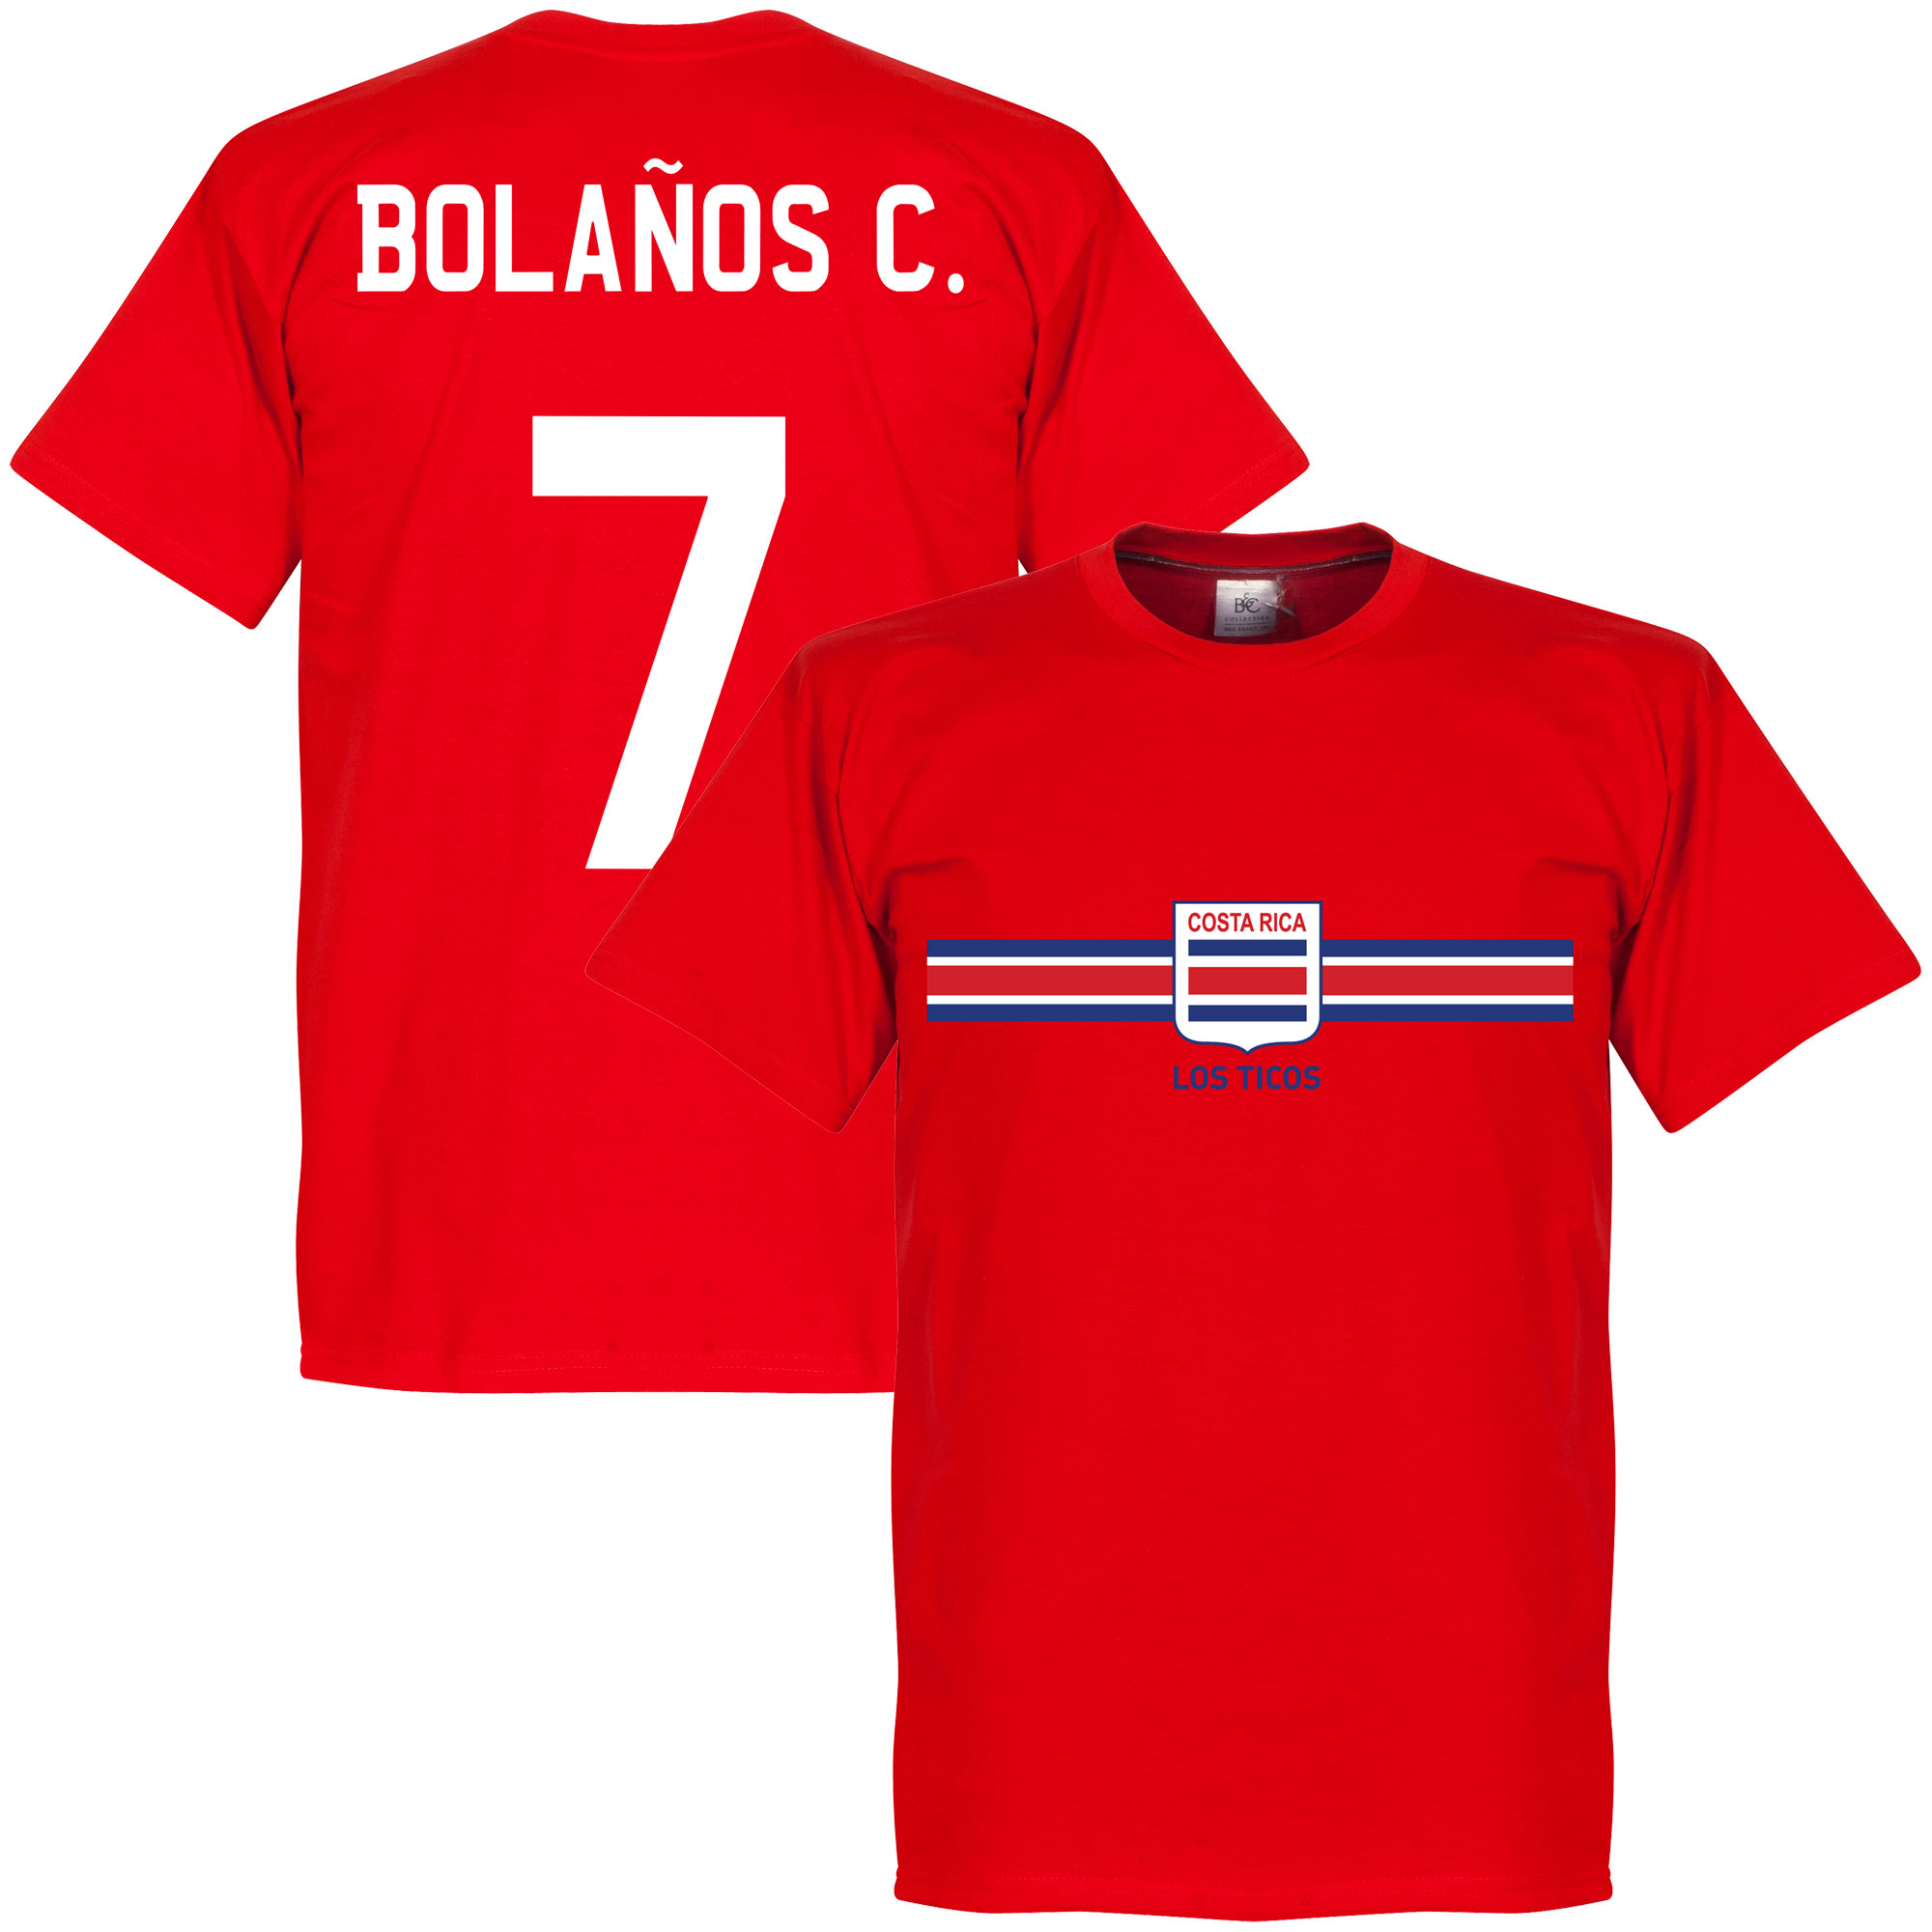 Costa Rica Bolanos C. Team Tee - Red - XXL